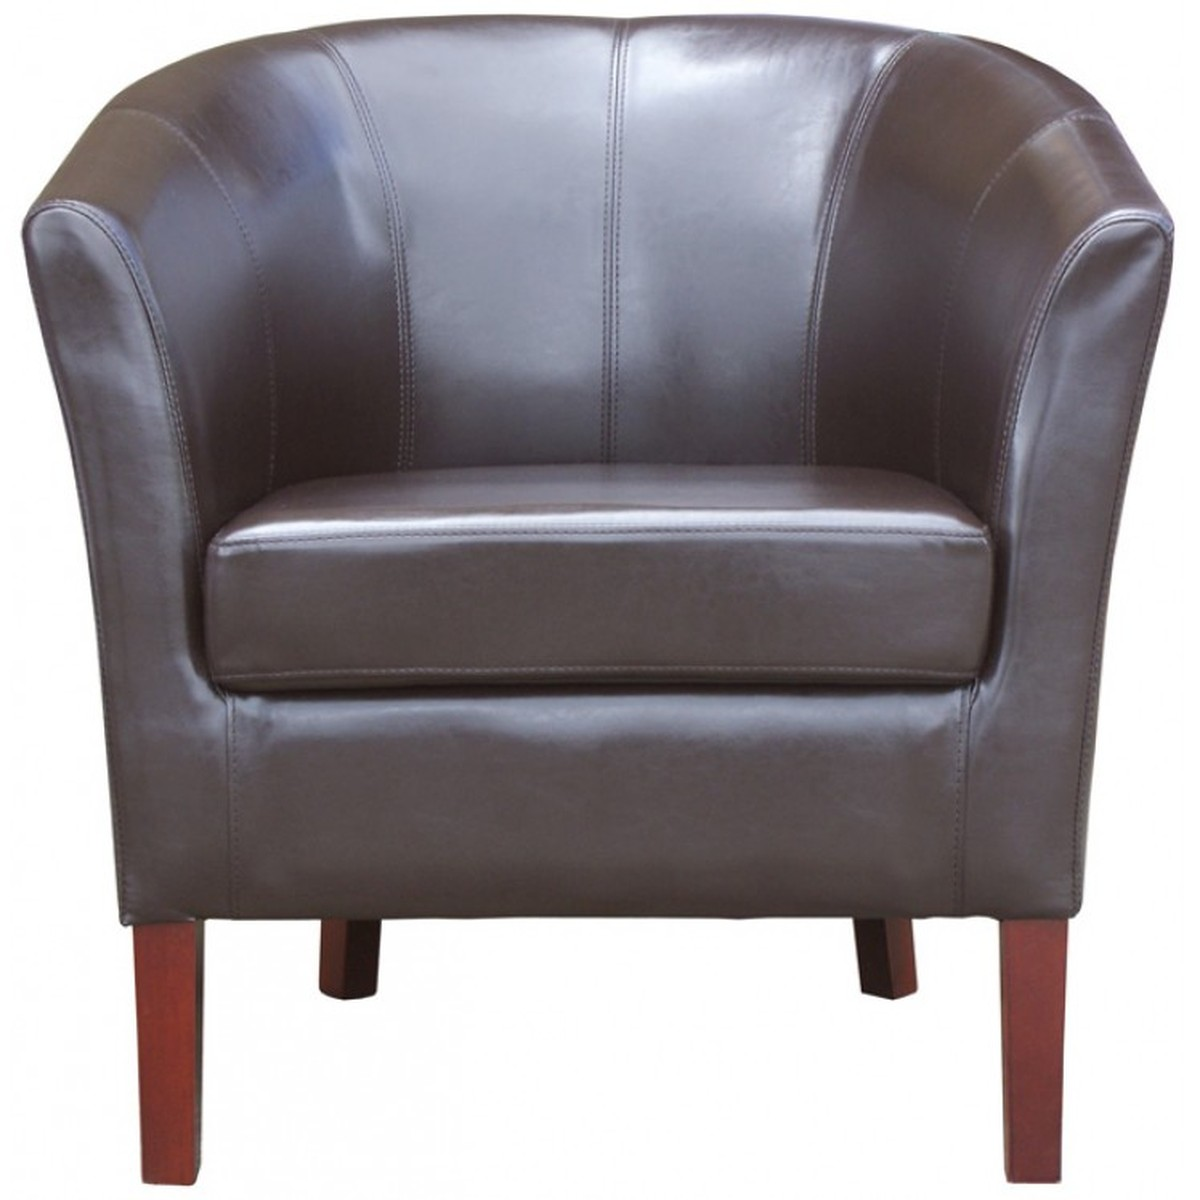 Secondhand Chairs And Tables Lounge Furniture New Brown Faux Leather Mayfair Commercial Tub